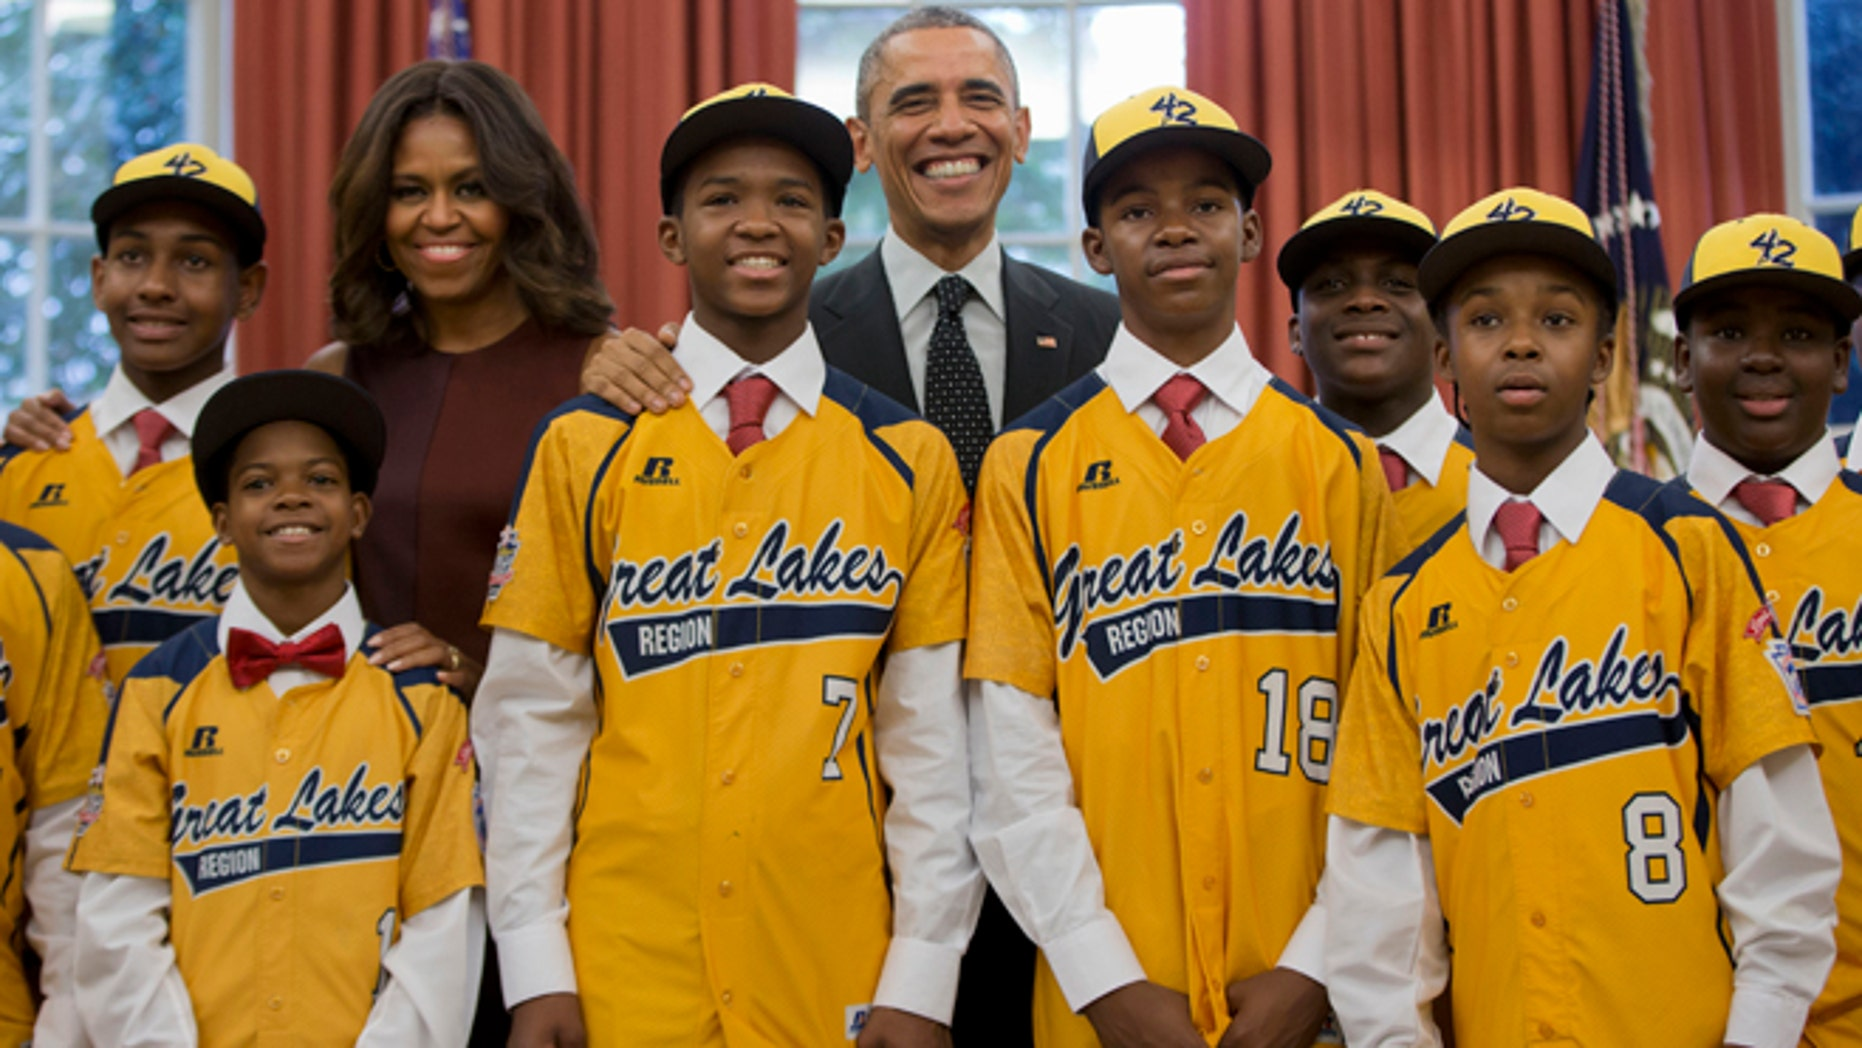 In this Nov. 6, 2014, file photo President Barack Obama and first lady Michelle Obama pose with members of the Jackie Robinson West little league team in the Oval Office of the White House in Washington. Little League International has stripped Chicago's Jackie Robinson West team of its national title after finding the team falsified its boundary map.